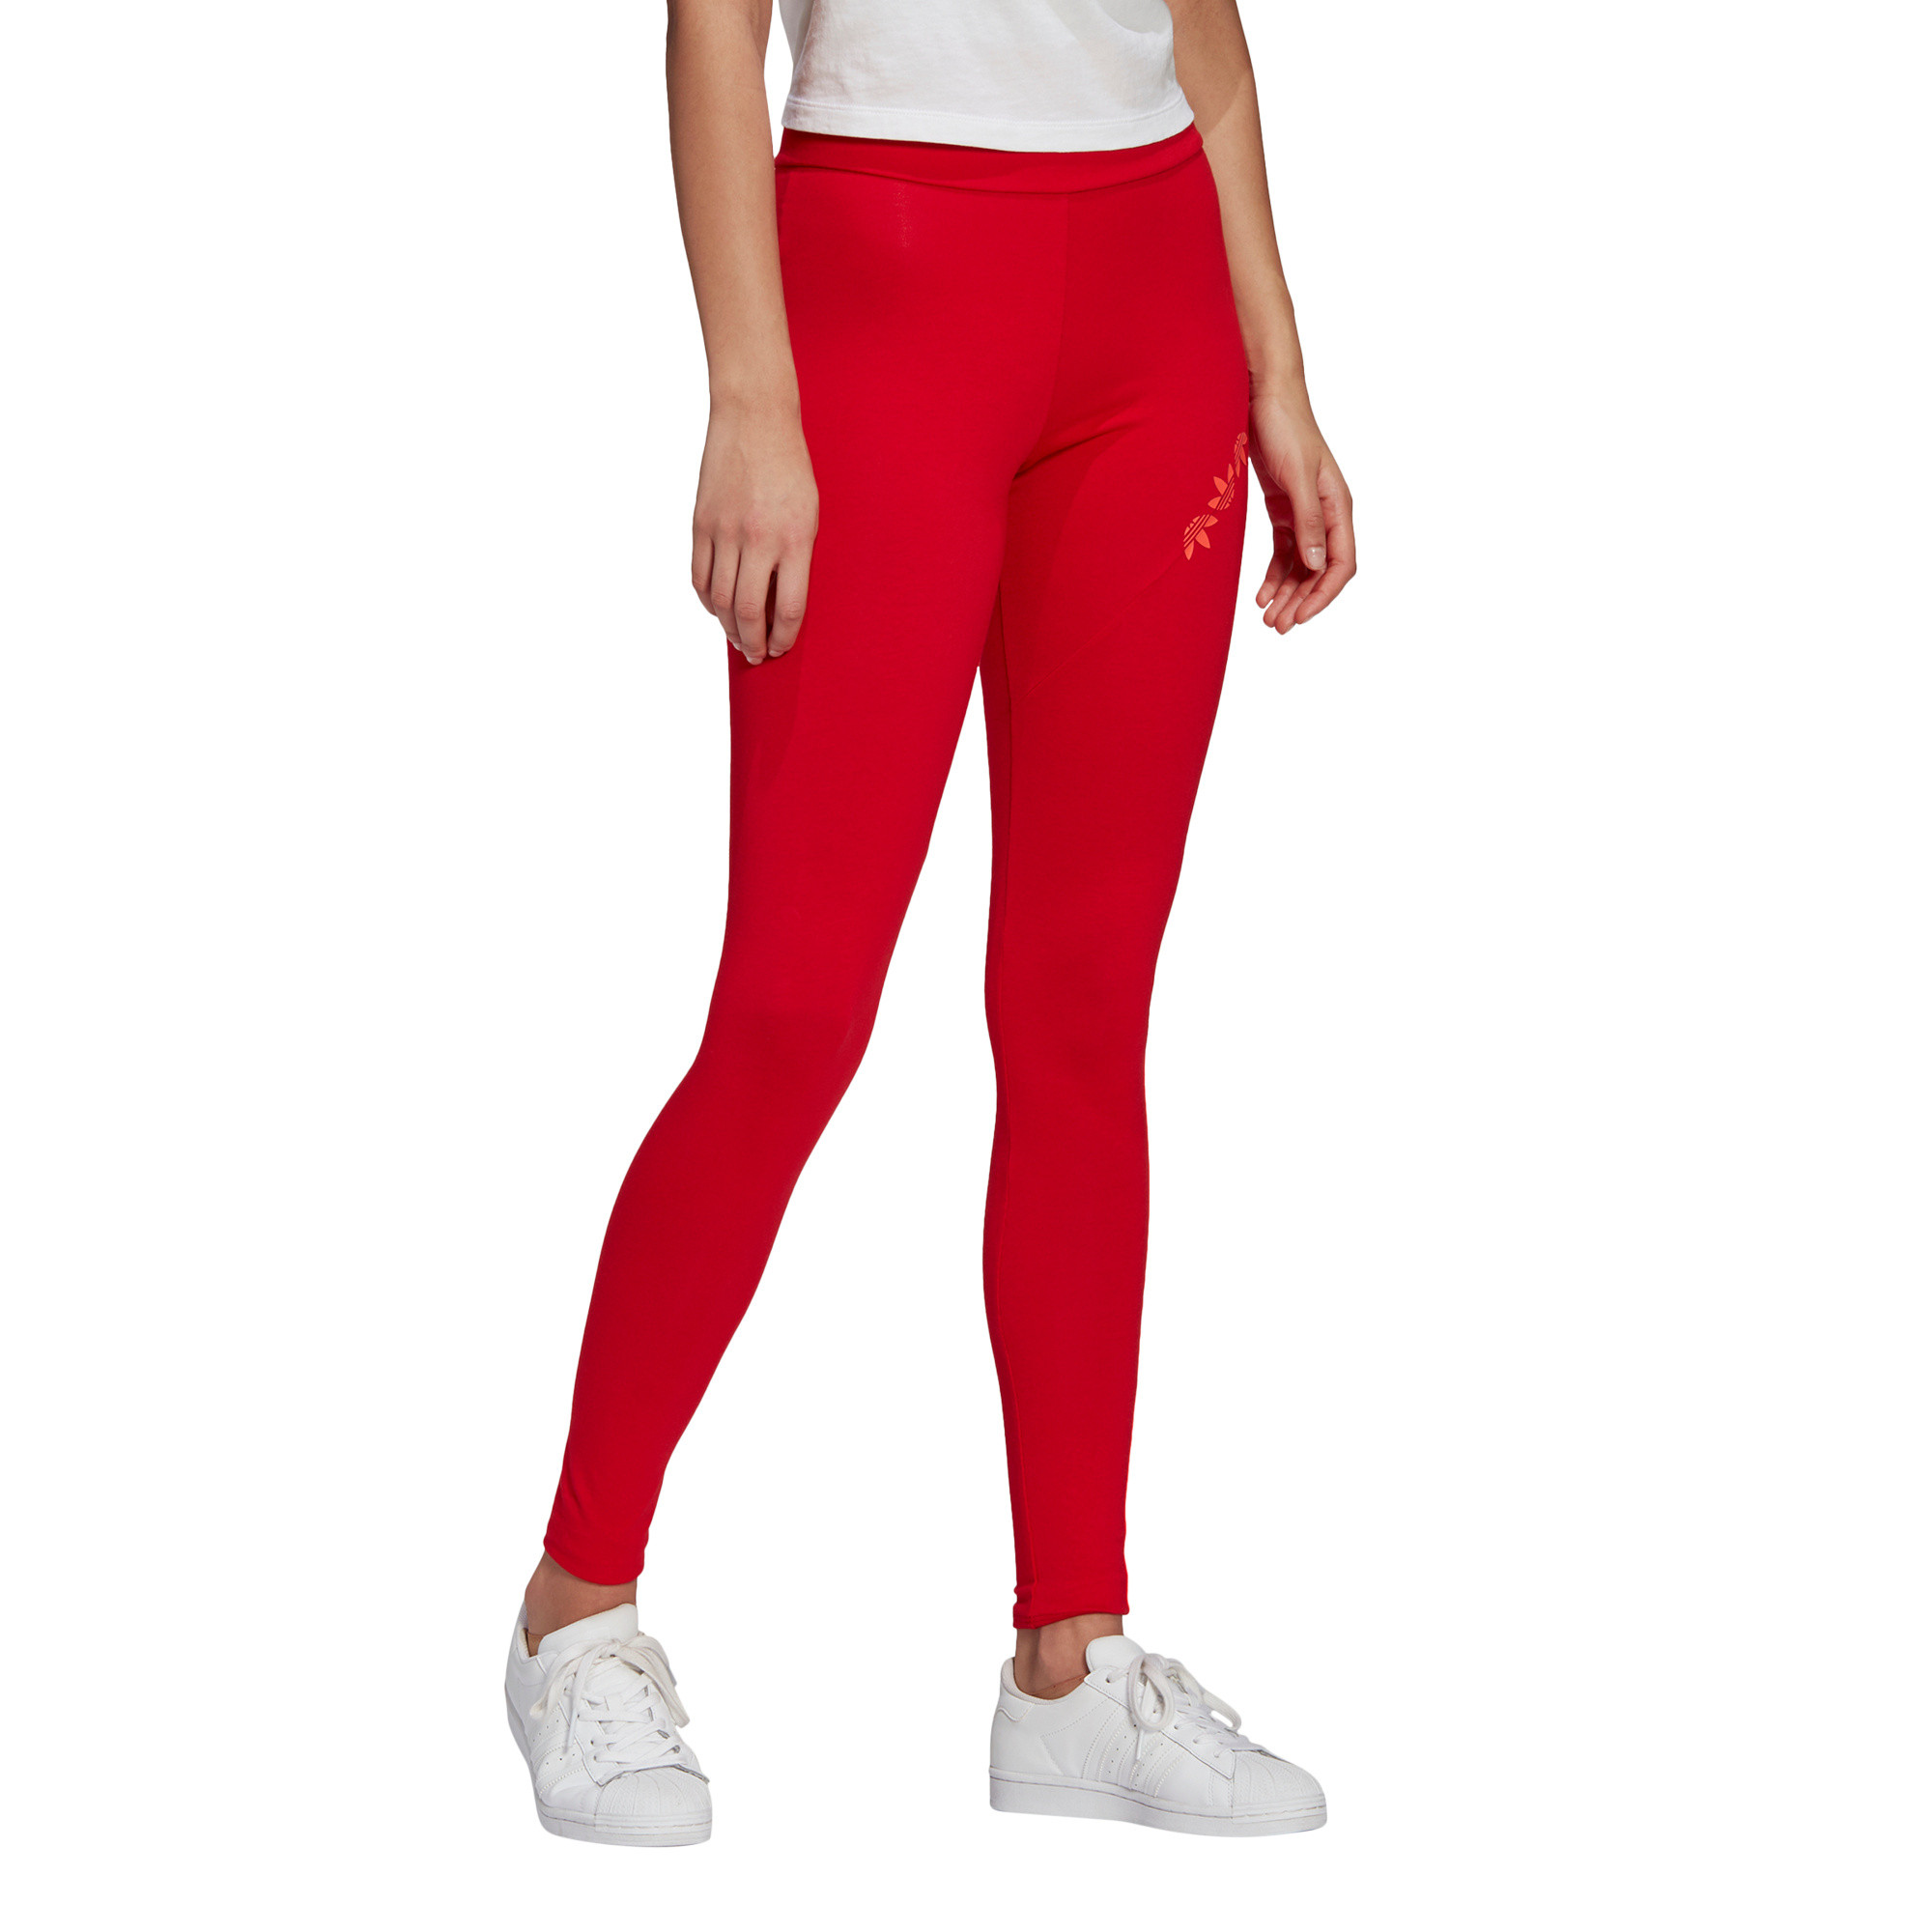 Tight adicolor Sliced Trefoil High-Waisted, Rosso, large image number 5